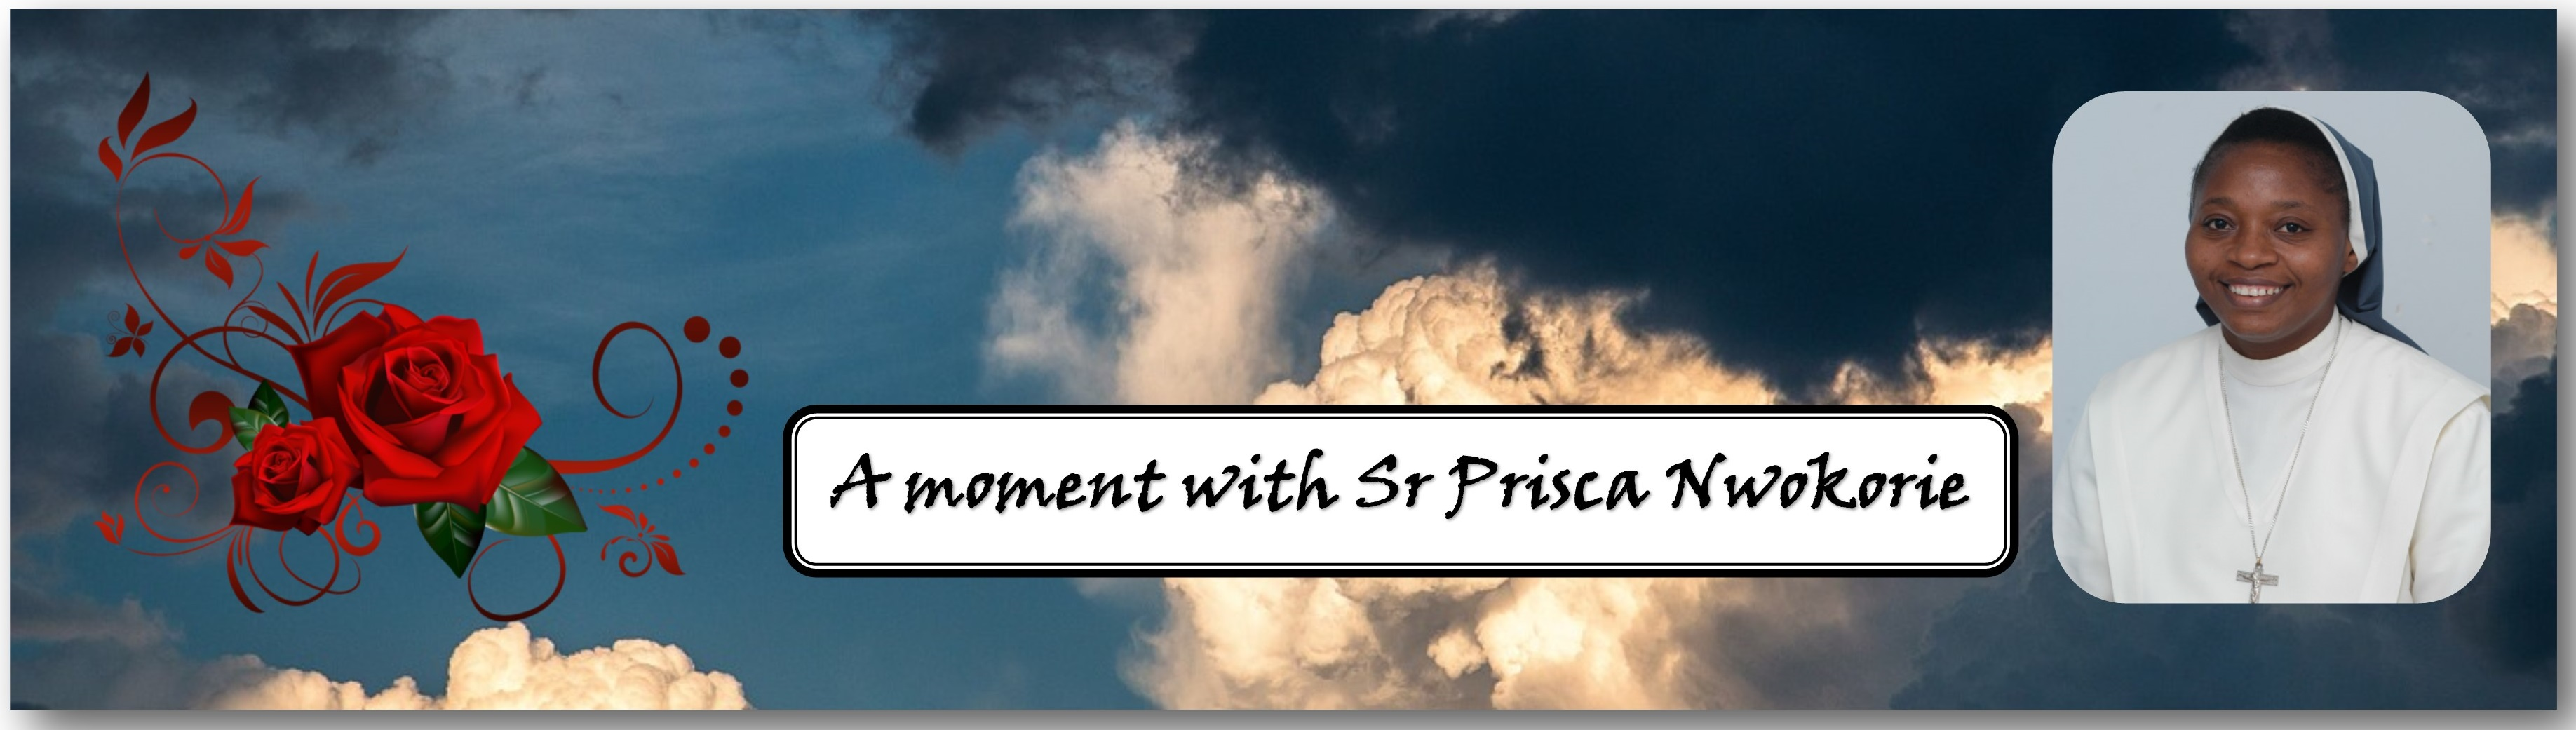 A moment with Sr Prisca Nwokorie